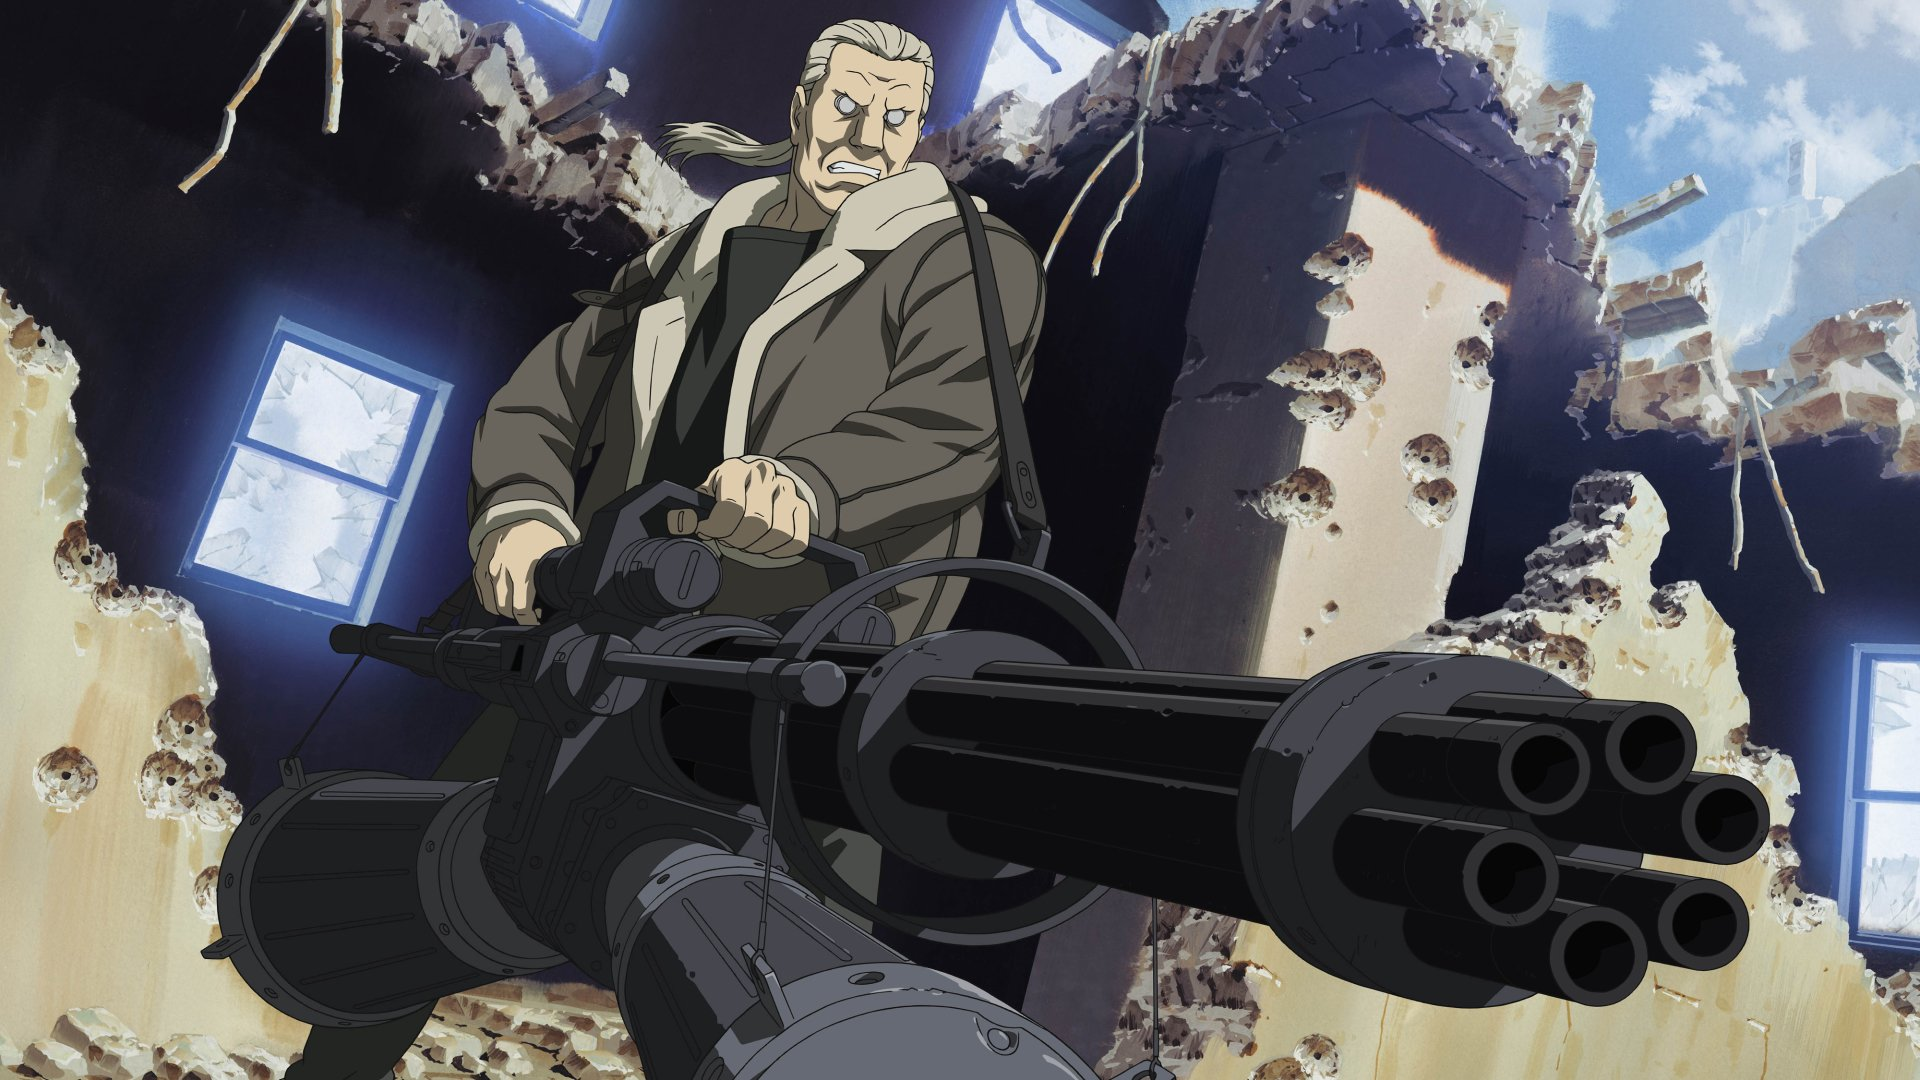 1 4k Ultra Hd Batou Ghost In The Shell Wallpapers Background Images Wallpaper Abyss